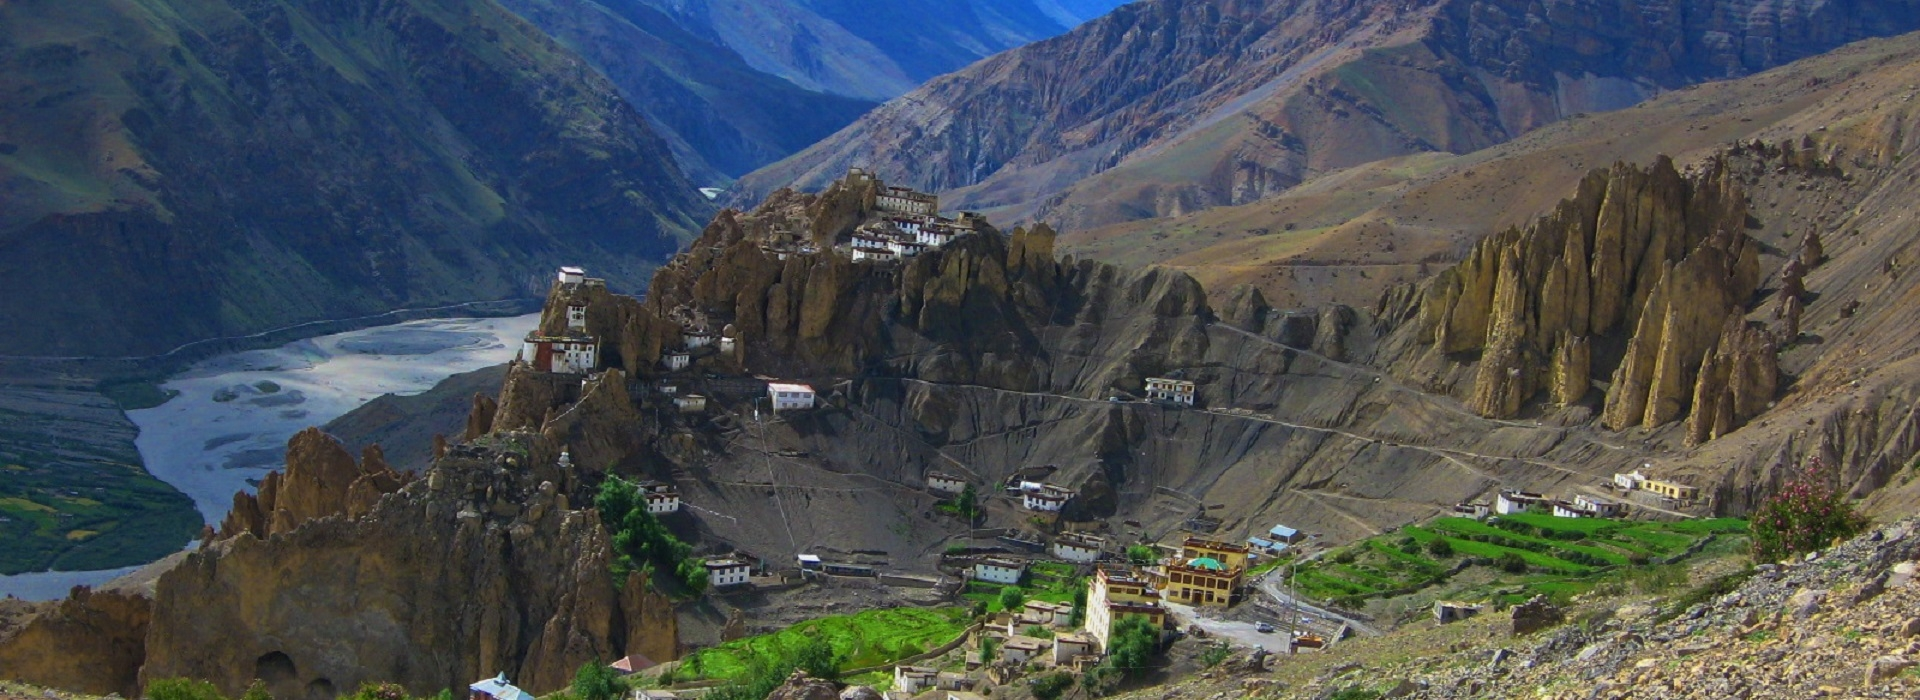 Dankhar - Spiti valley